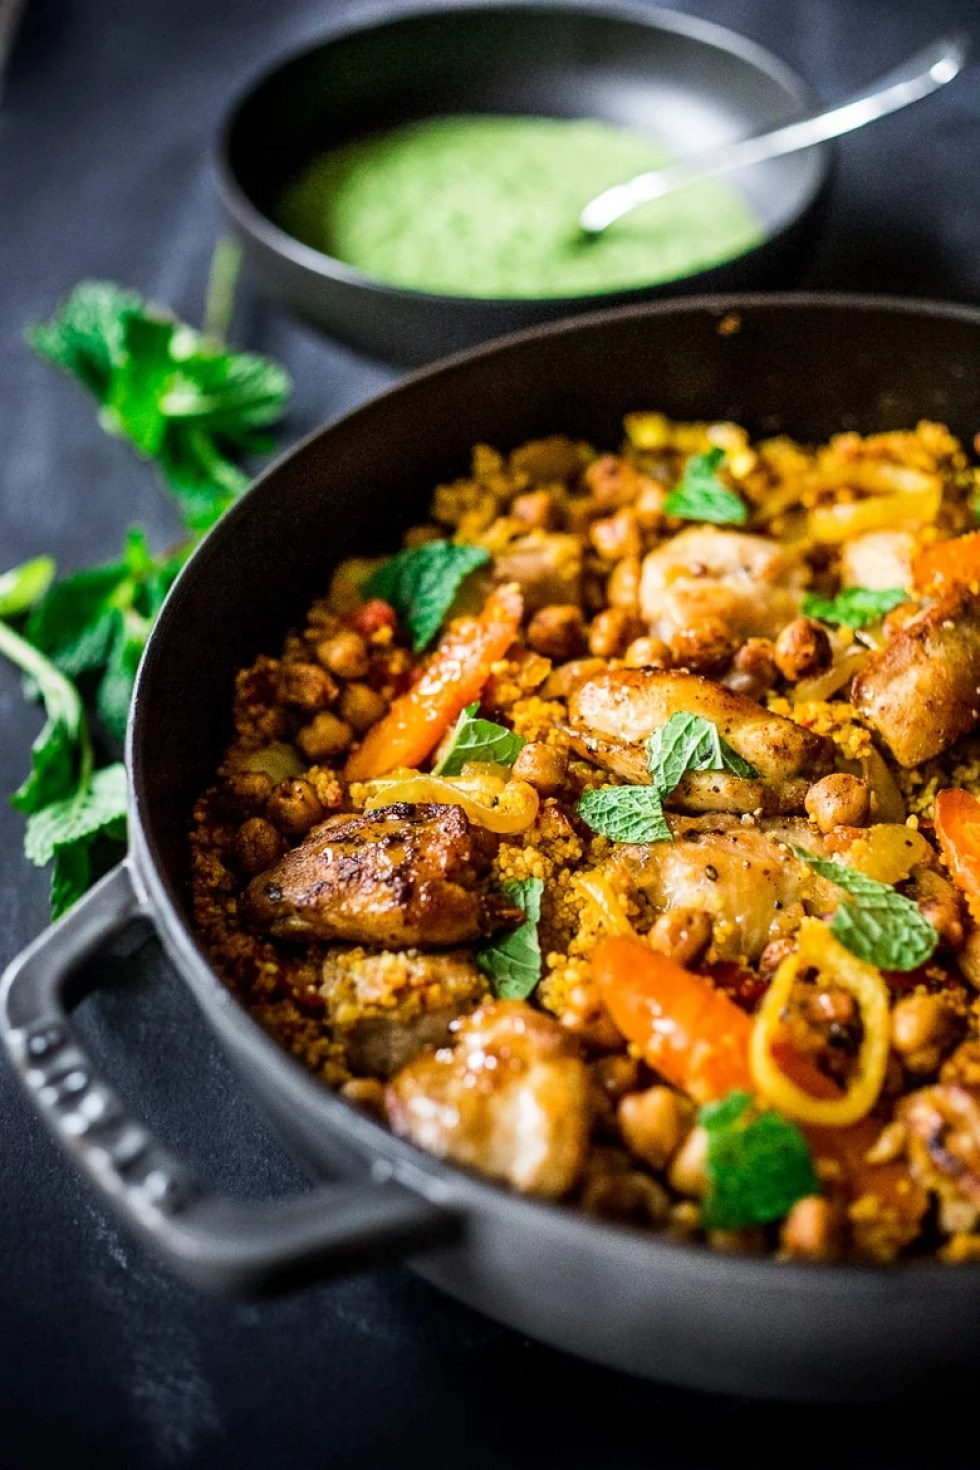 Delicious Tunisian Chicken ( or chickpeas) with Carrots, Cous Cous and flavorful Green Harissa Yogurt Sauce. A one-pot meal that can be made in 45 mins | www.feastingathome.com #tunisian #chicken #chickpeas #couscous